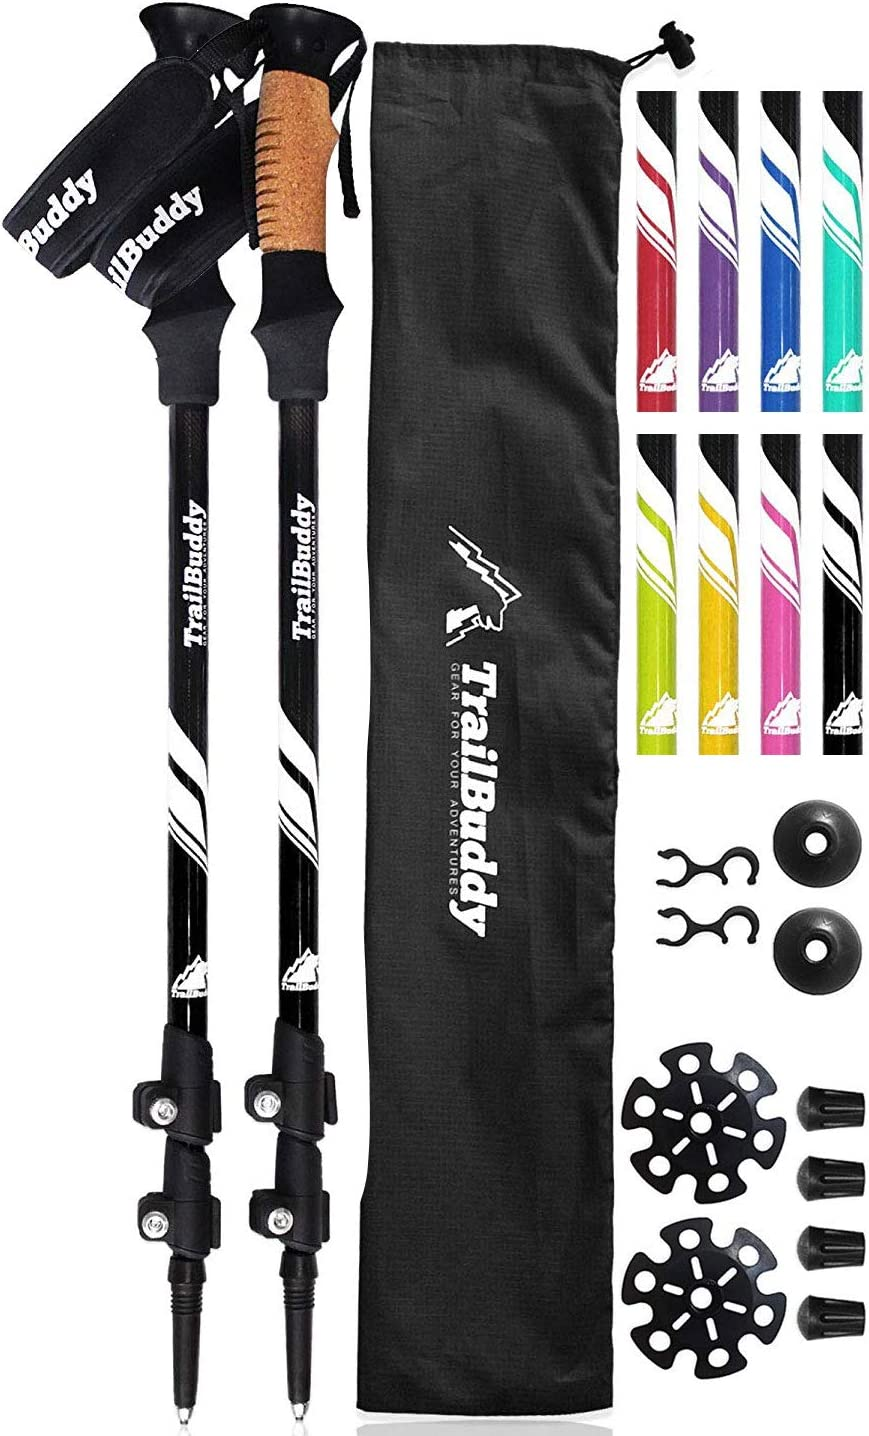 TrailBuddy Trekking Poles – 2-pc Pack Adjustable Hiking or Walking Sticks – Strong, Lightweight Aluminum 7075 – Quick Adjust Flip-Lock – Cork Grip, Padded Strap